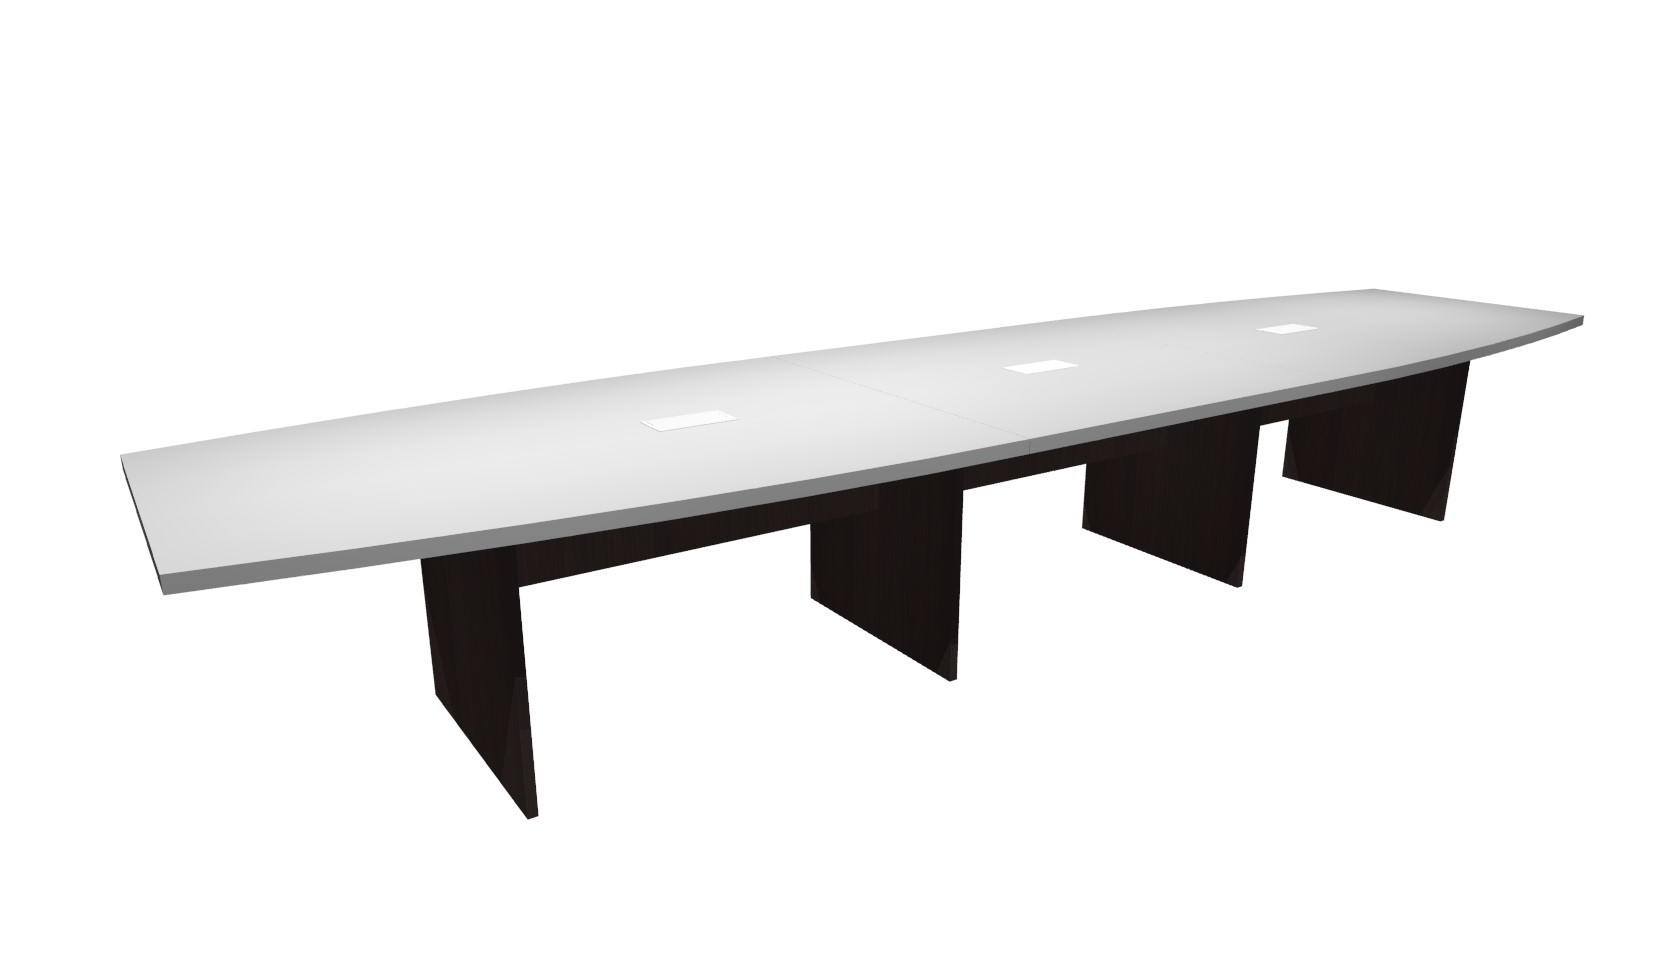 FT White Espresso Boat Shaped Conference Table - 16 ft conference table